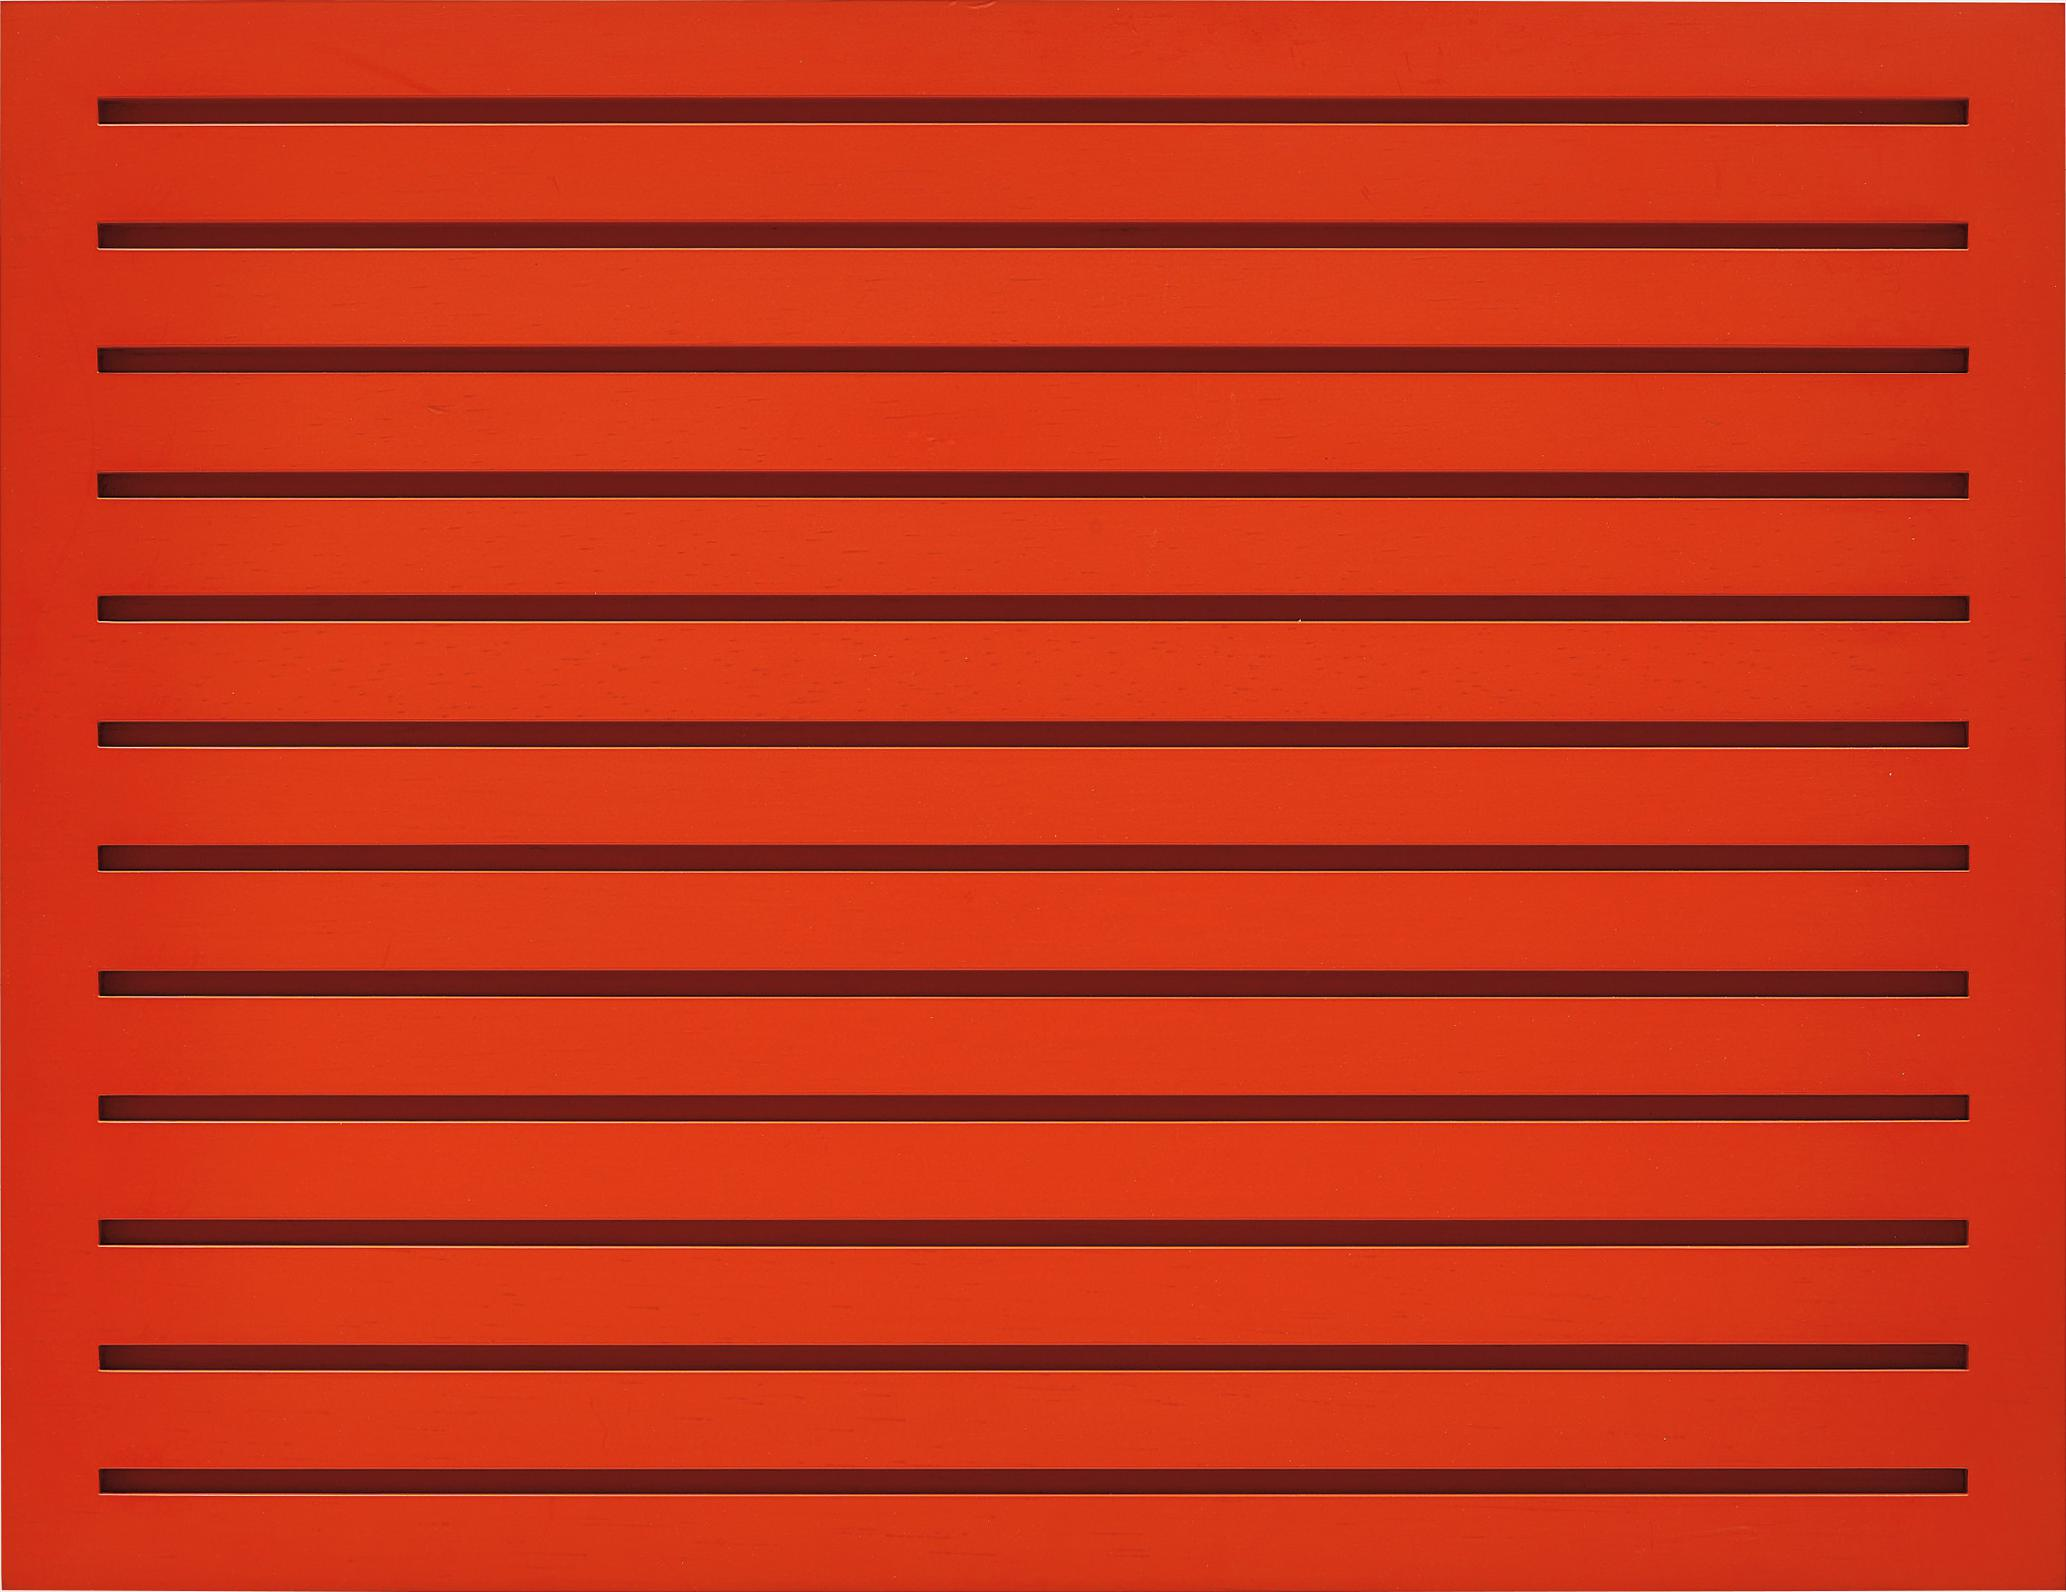 Donald Judd-Untitled (90-2 1990 Sfa)-1990